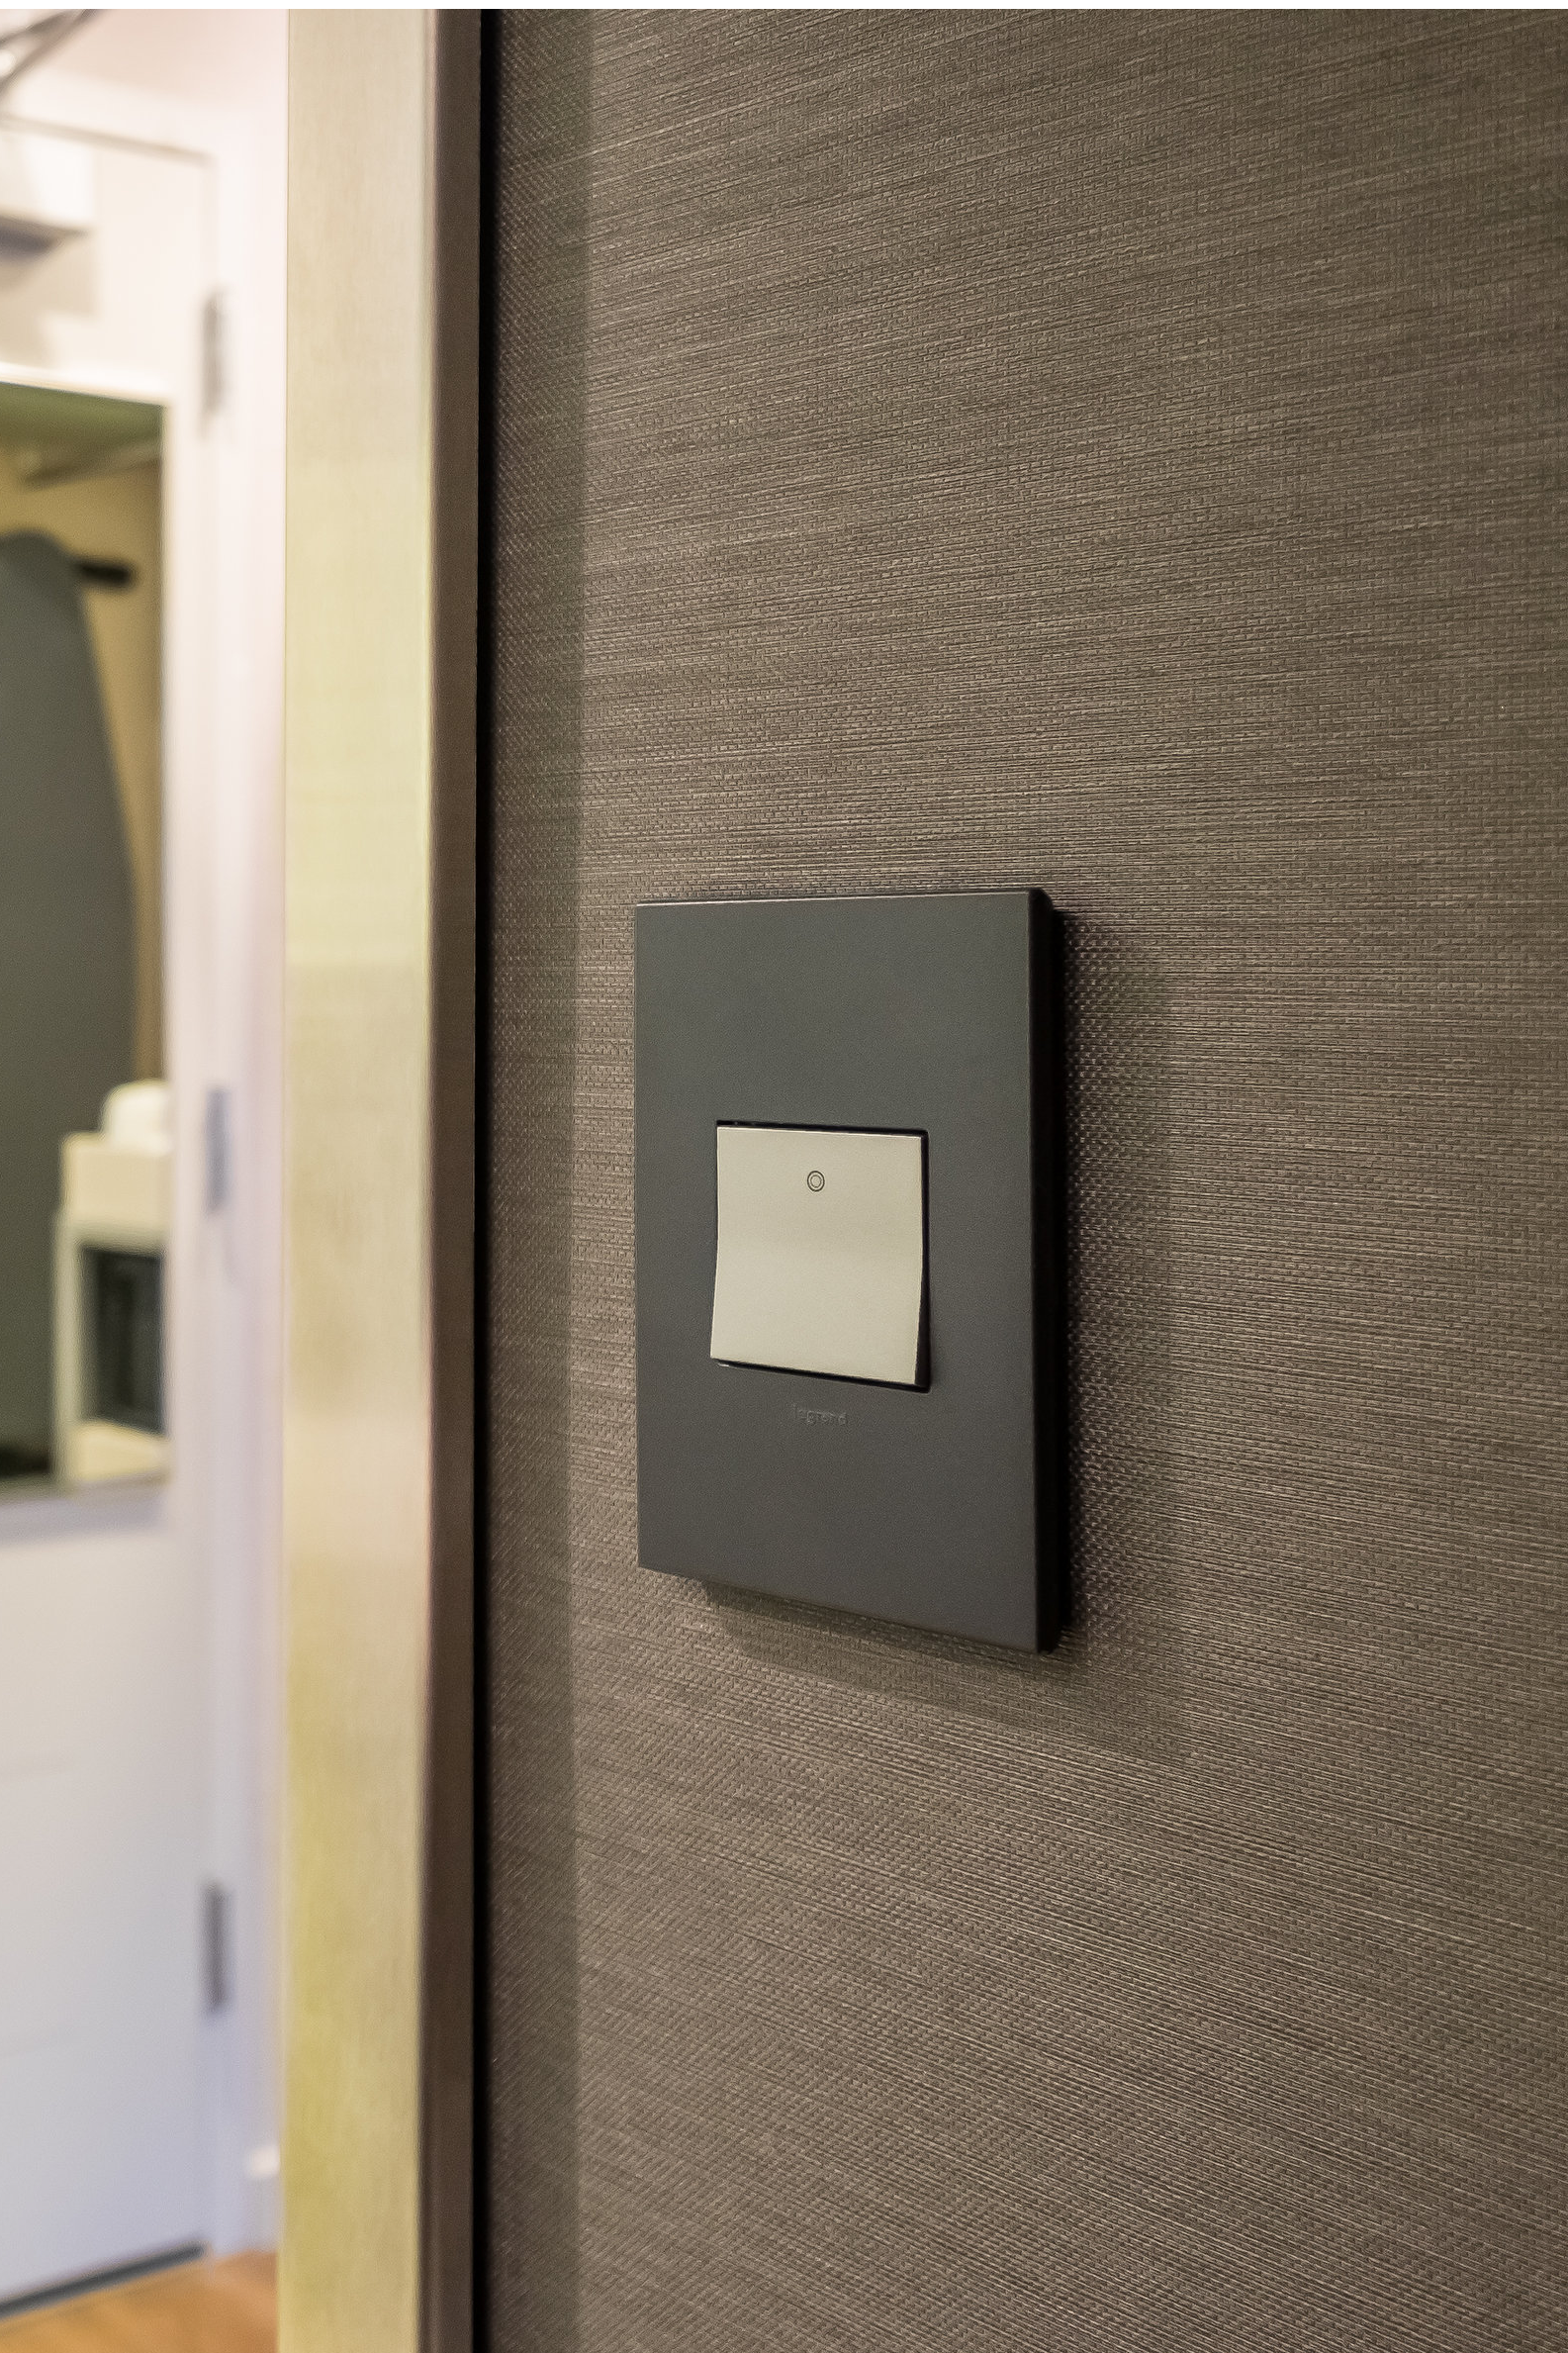 Legrand adorne Wi-Fi lighting control system example wall switch